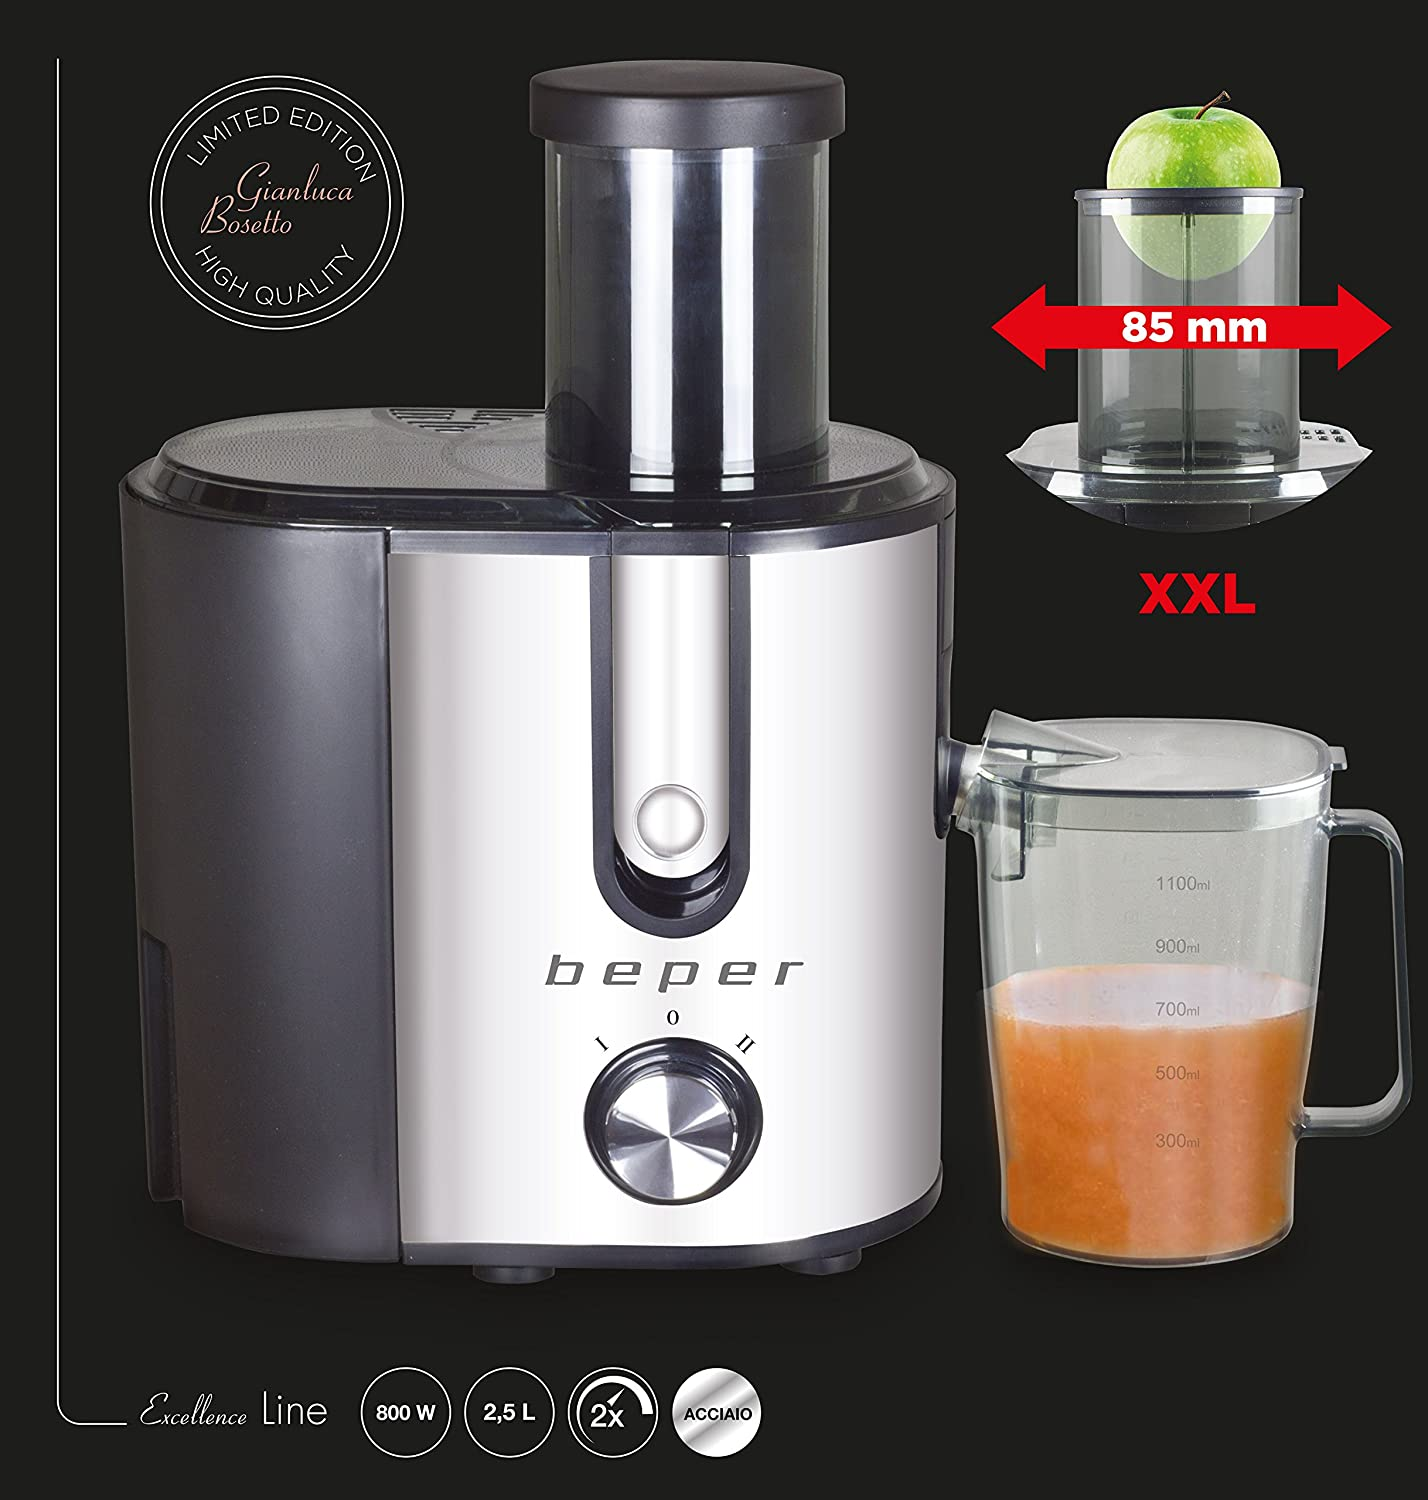 Beper Juice Extractor Body and Filter in Steel 90.424